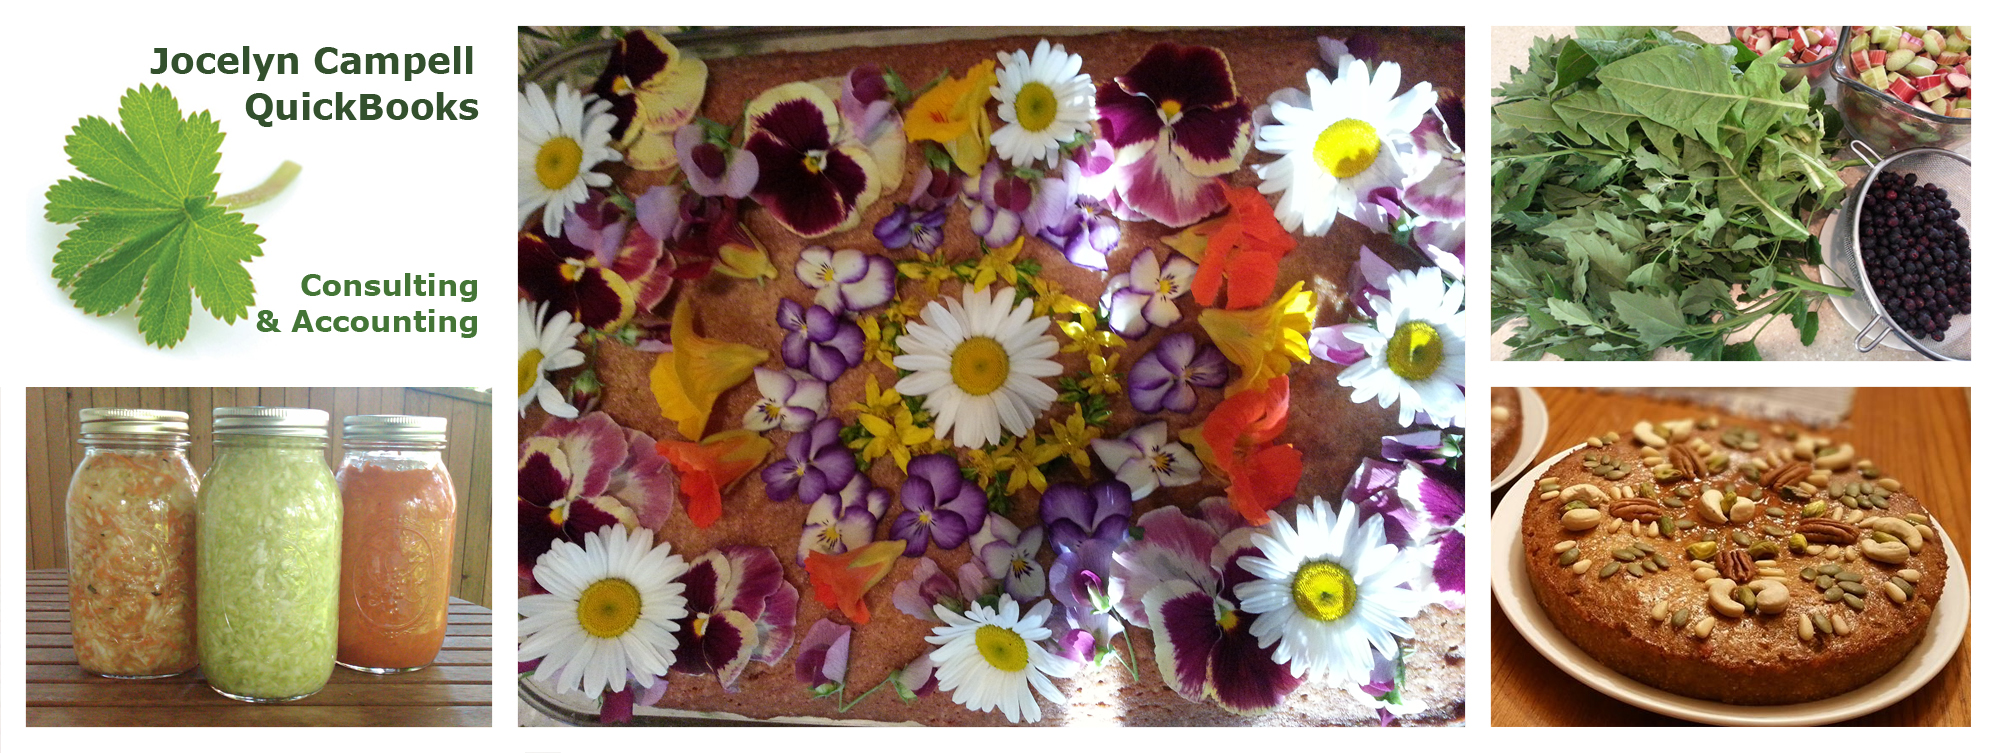 cake decorated with edible flower, lacto-fermented vegetables, baked treats, Jocelyn Campbell quickbooks